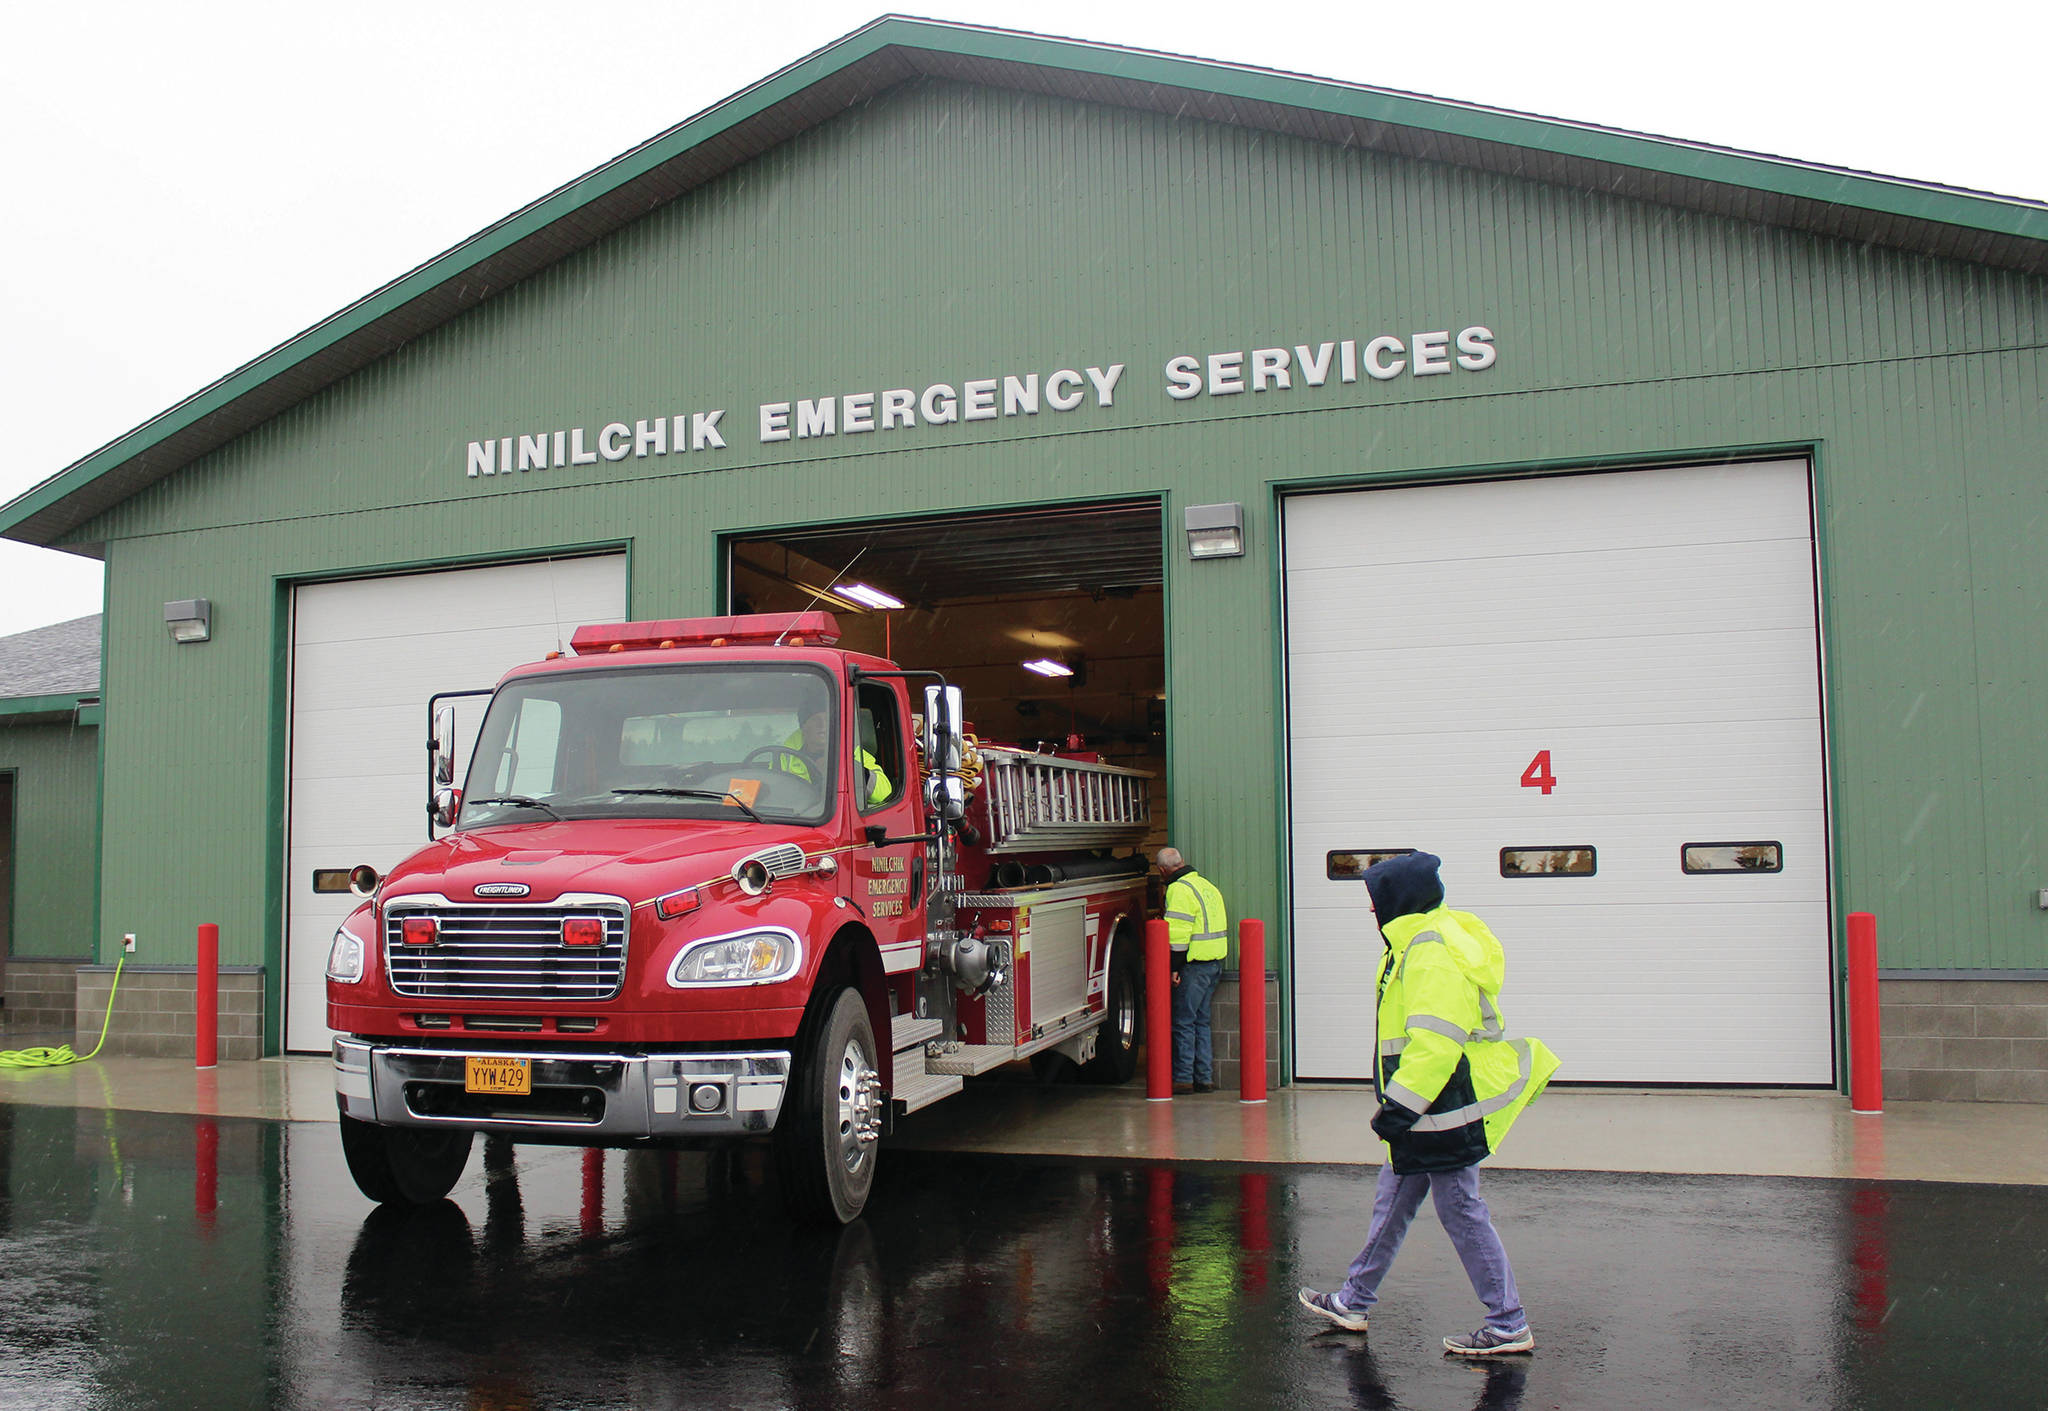 Ninilchik Fire Chief David Bear moves the fire truck out of the new Ninilchik Emergency Services building on Aug. 9, 2014, to make room for visitors to the open house of the new NES building. (Homer News file photo)